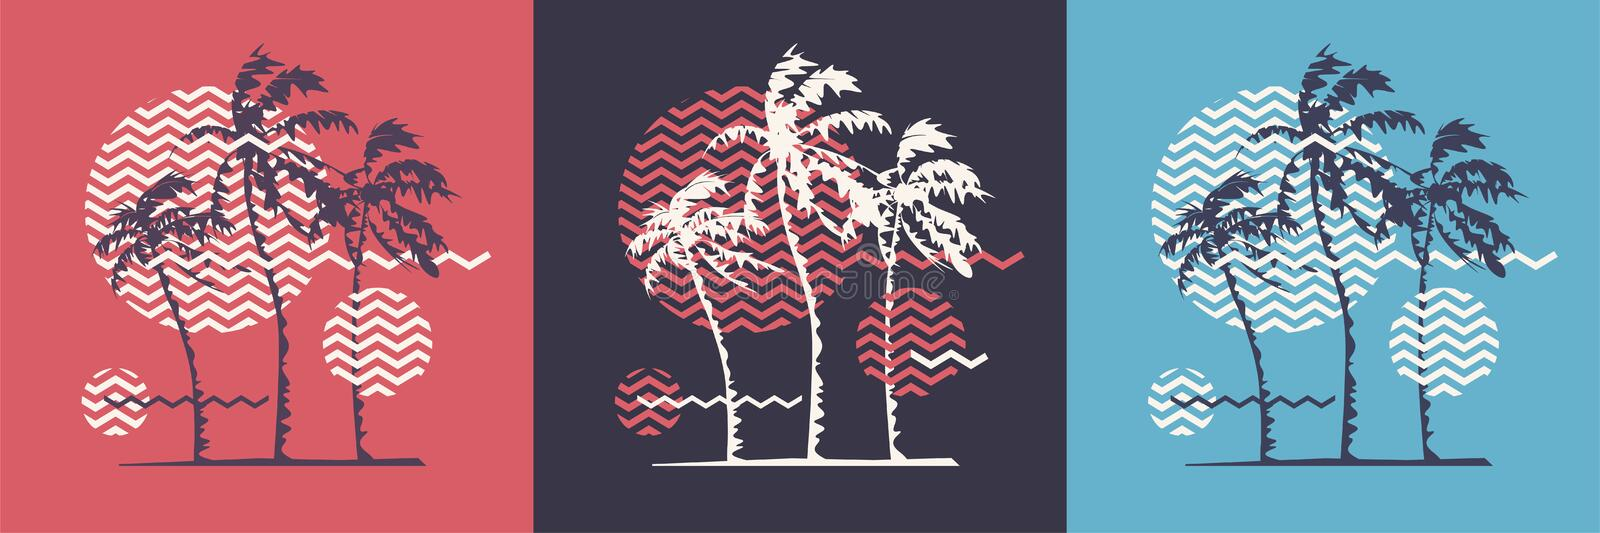 Graphic t-shirt geometric design with stylized palm trees on the topic of summer, holidays, beach, seacoast, tropics. Vector illustration vector illustration